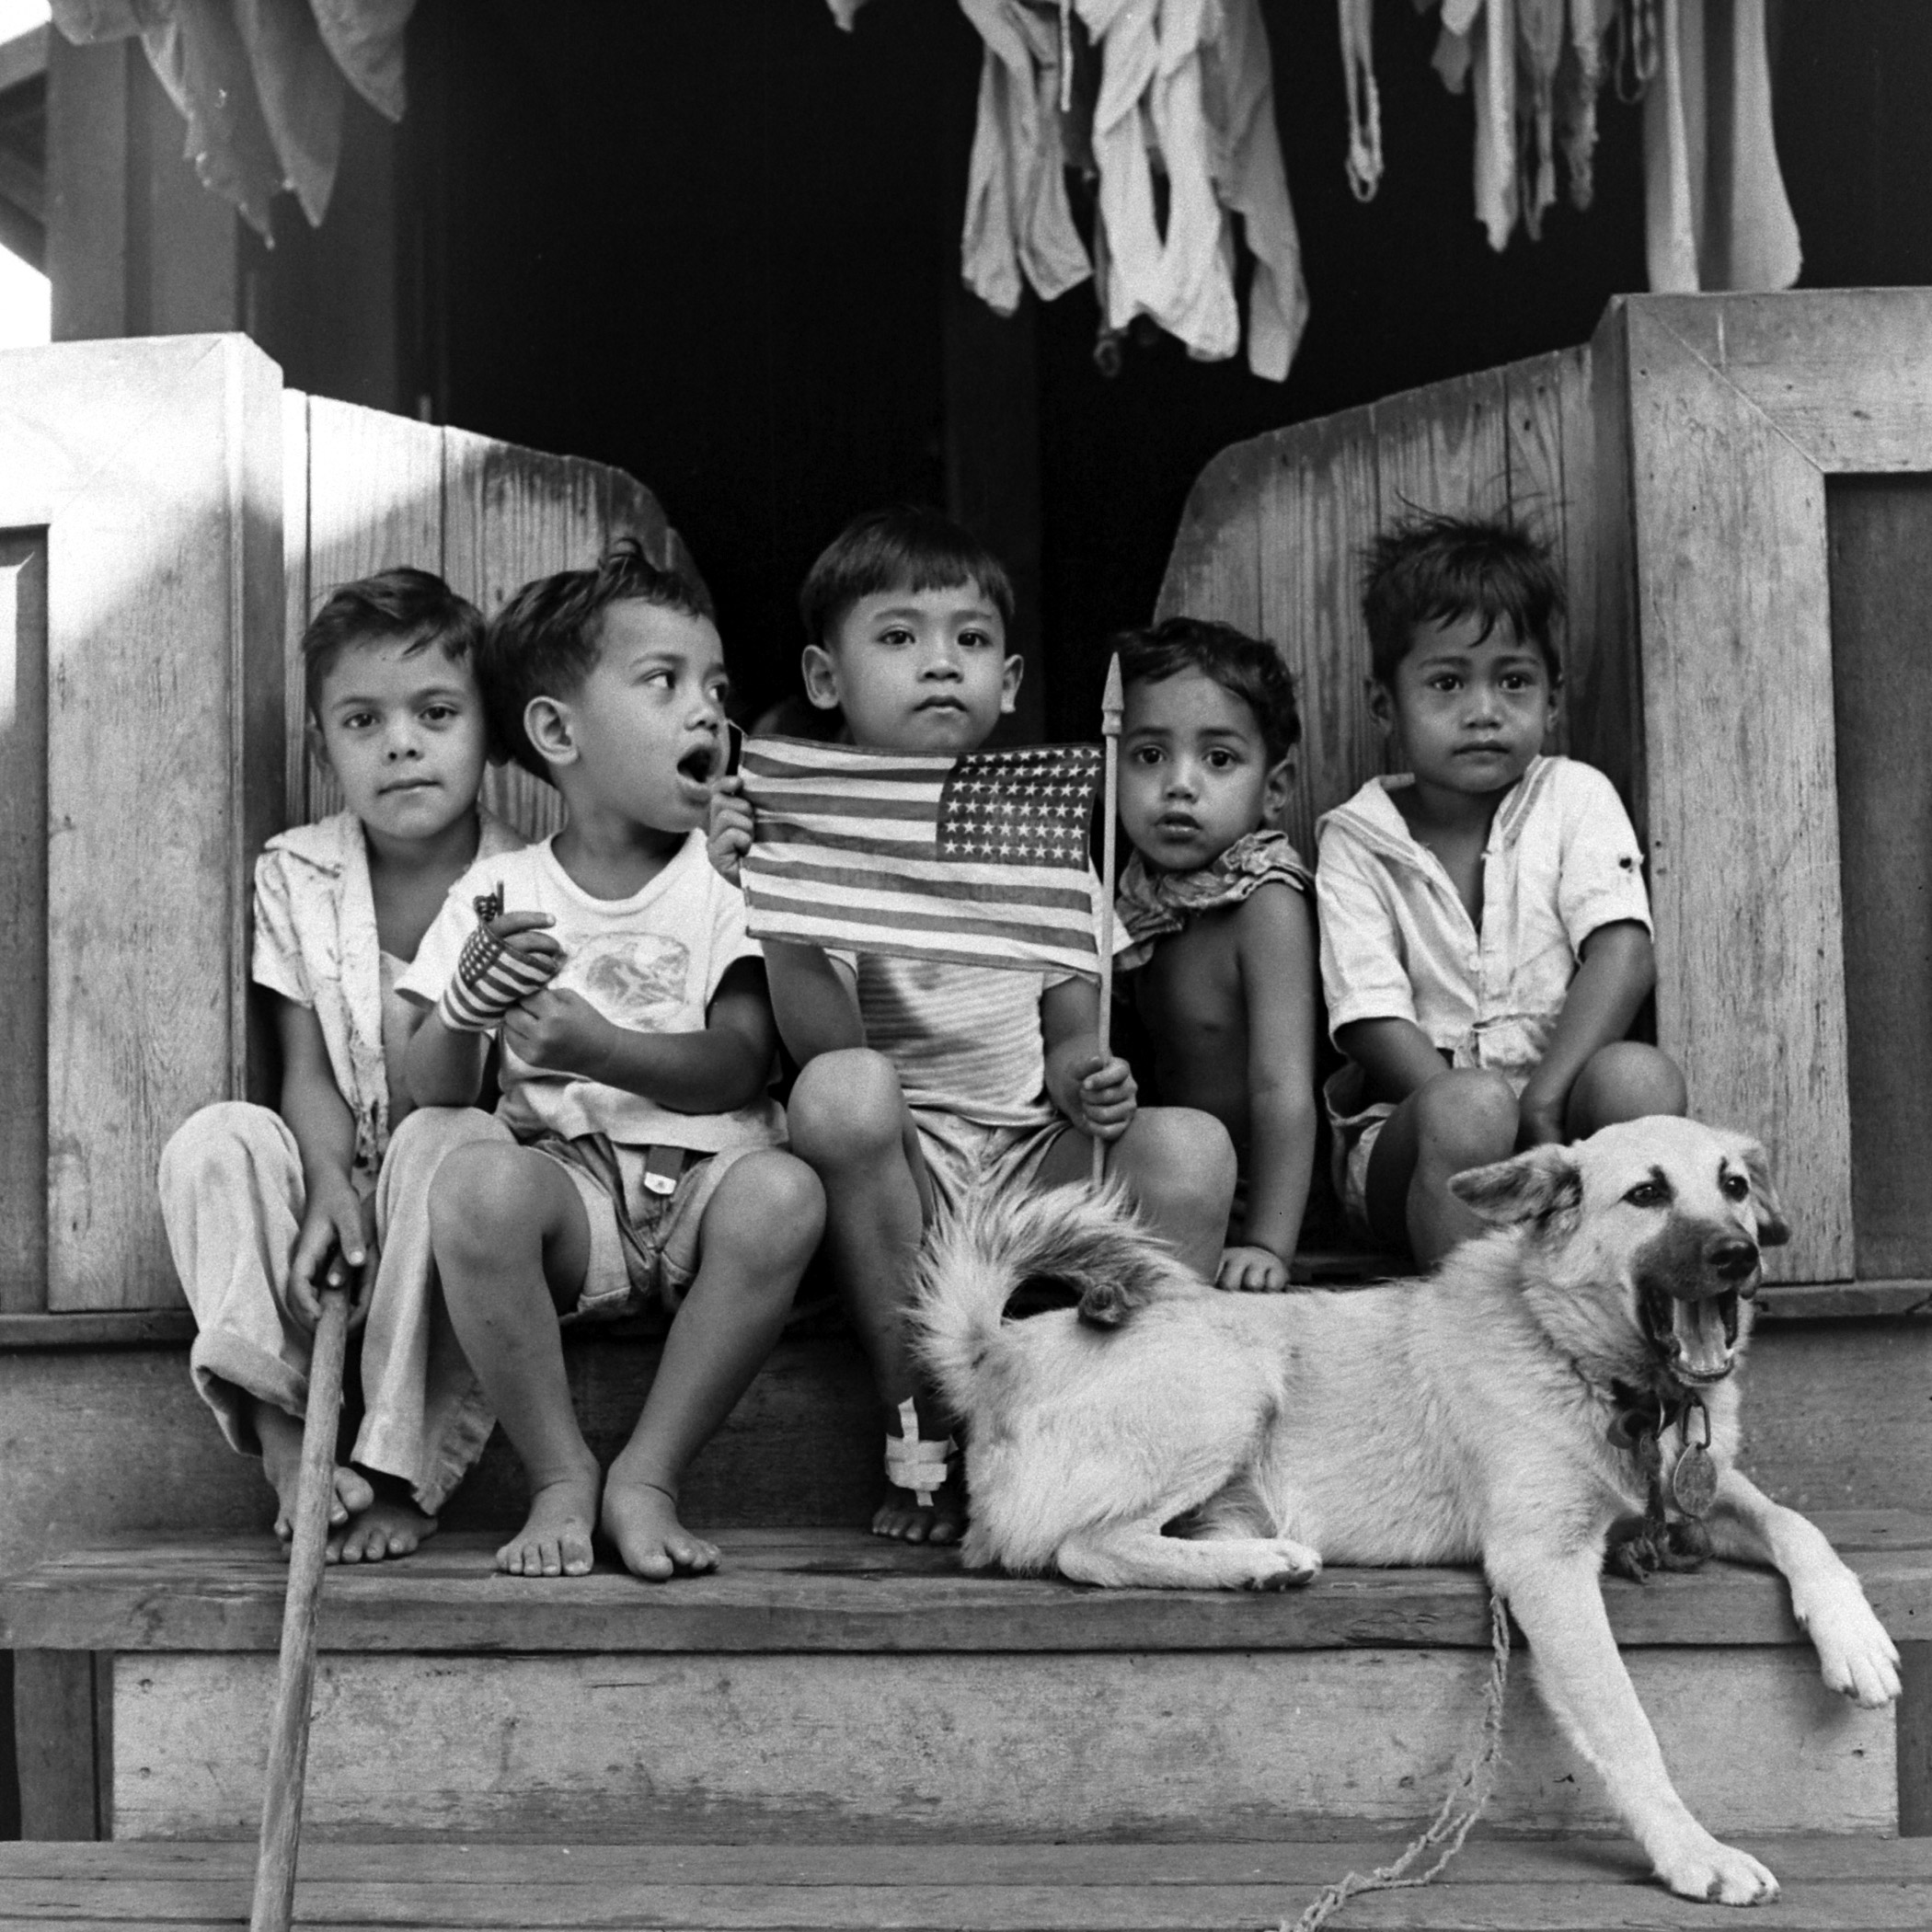 Children with an American flag hang out on a front porch.